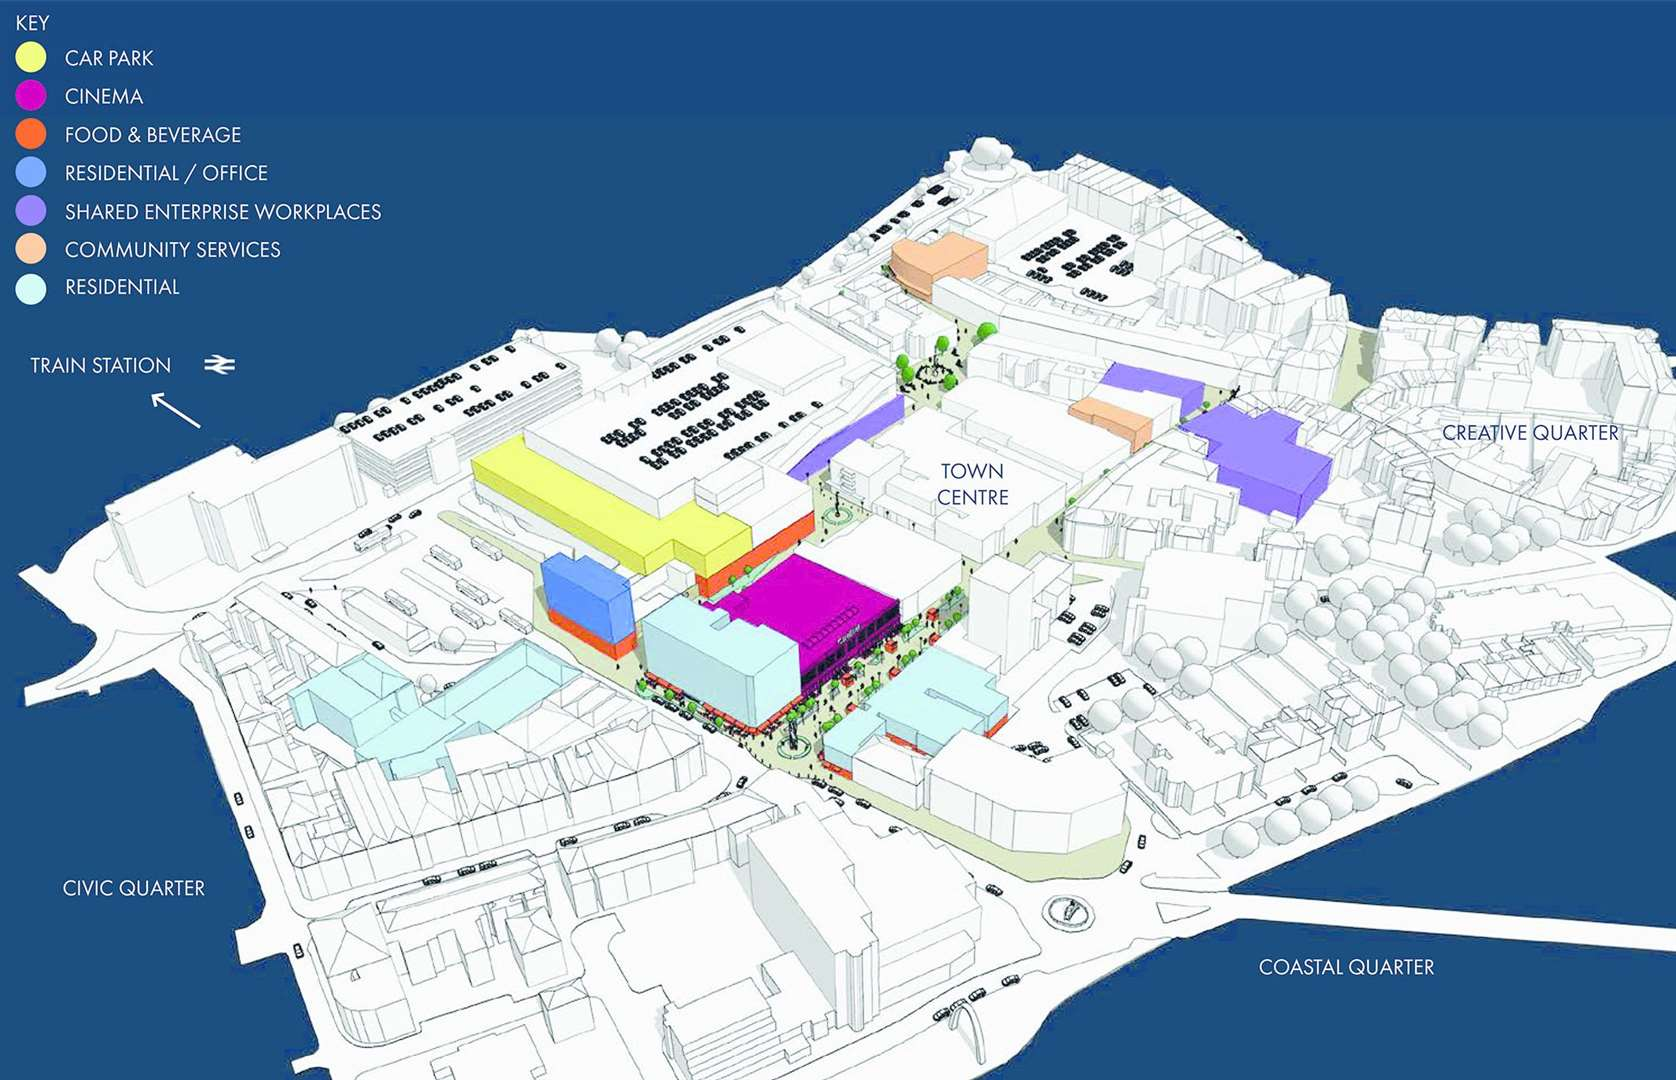 The new town centre plans for Folkestone, including a cinema on the Debenhams site. Credit: Turnerbates Ltd (9217003)